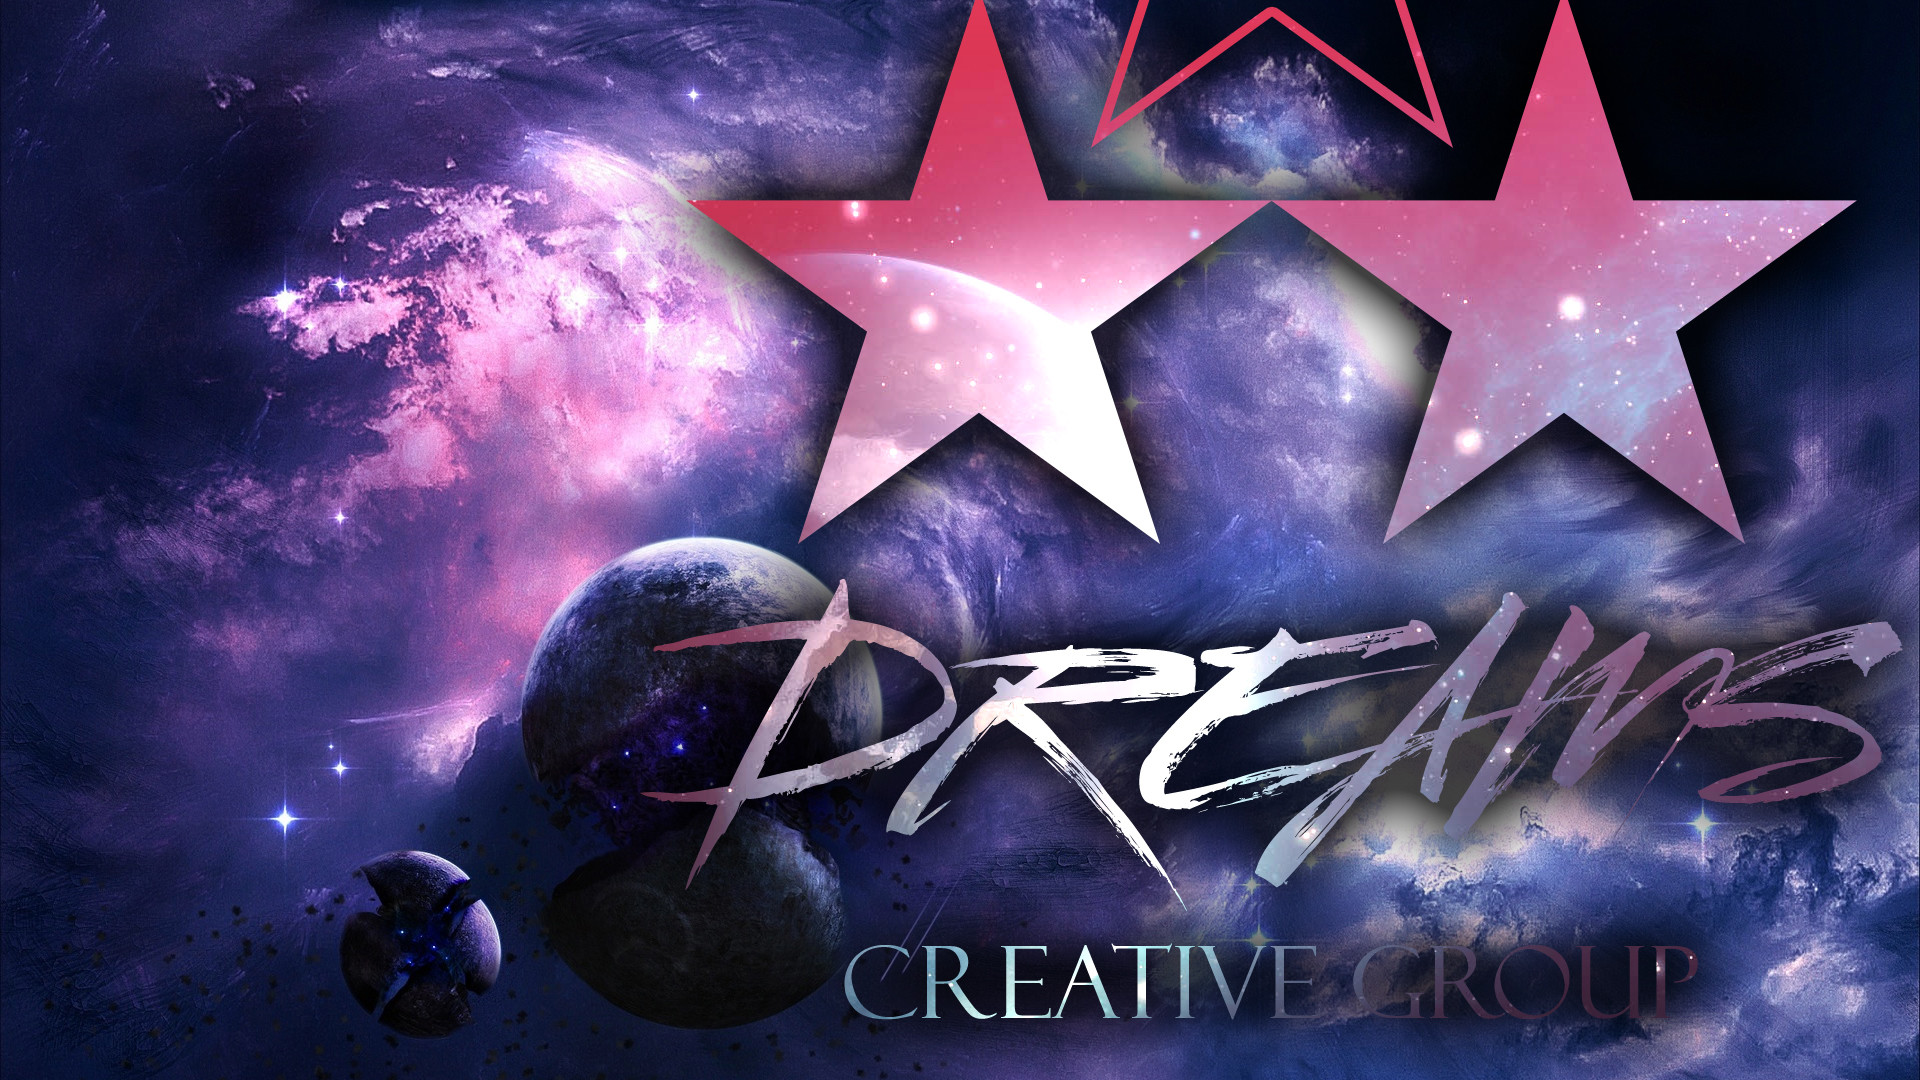 1920x1080 Dreams Creative Group